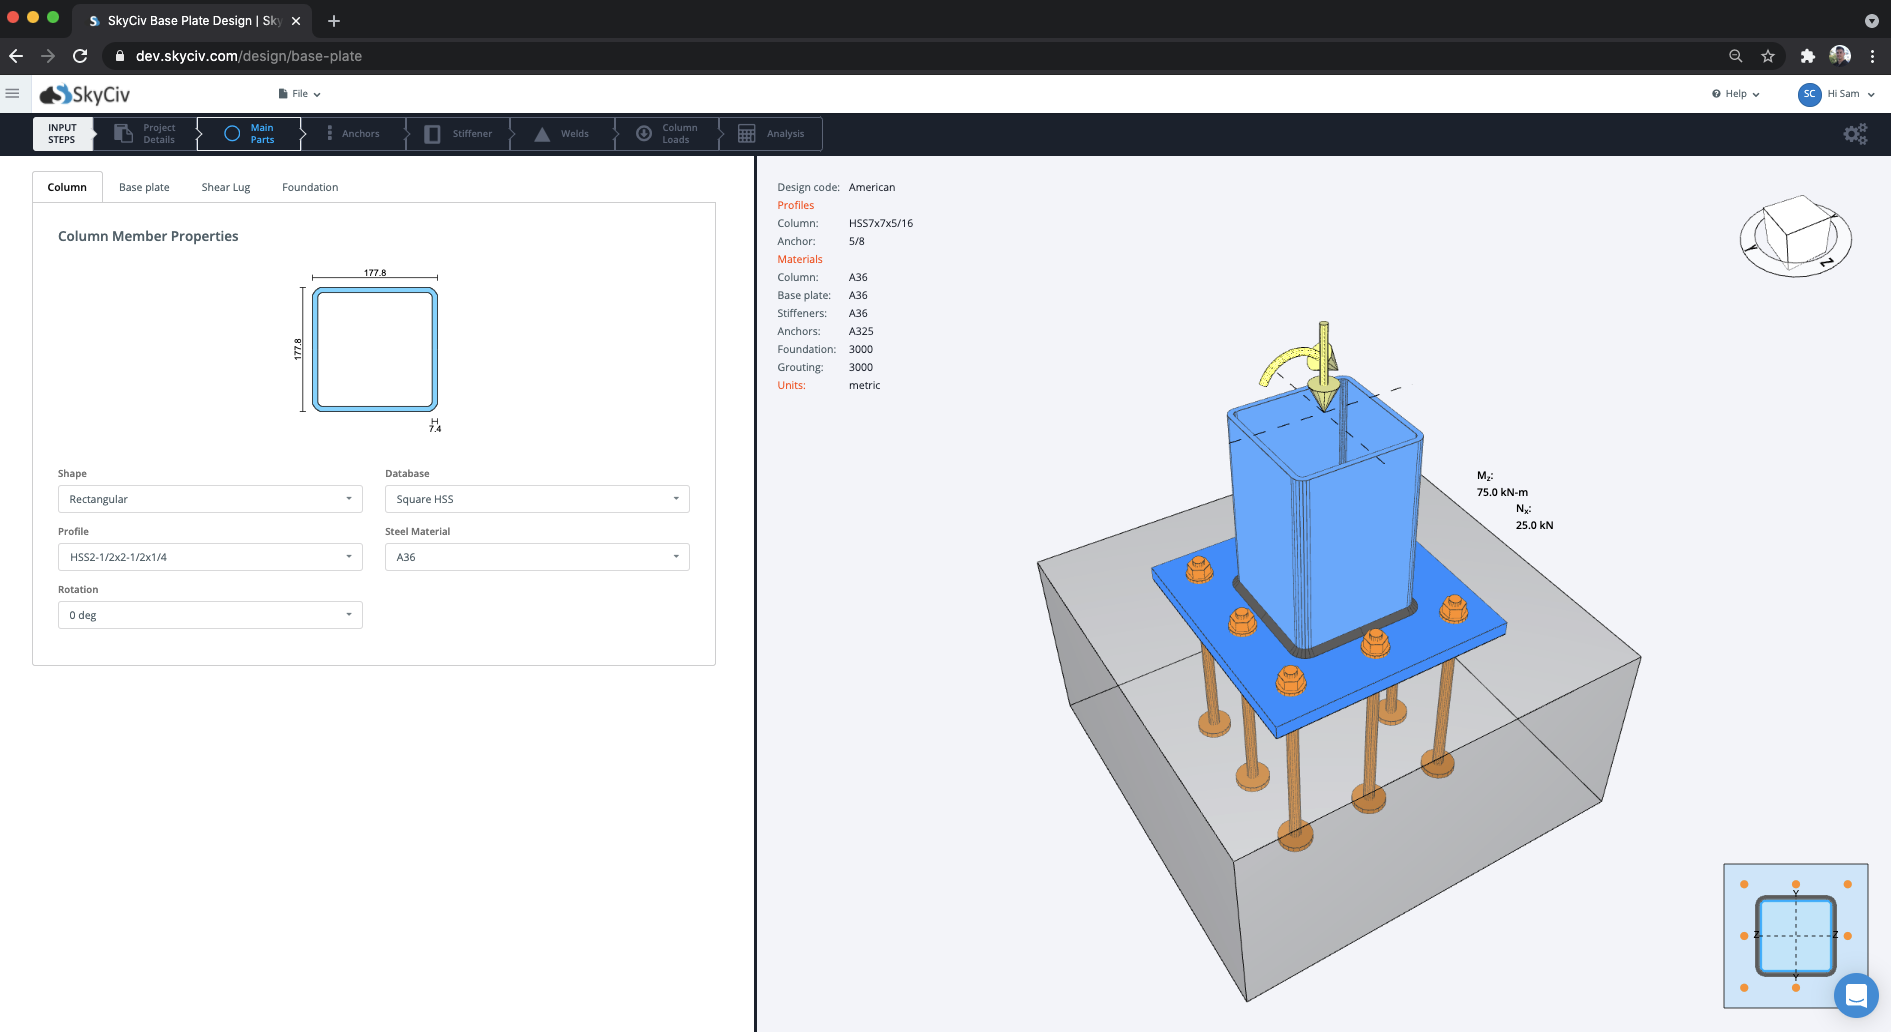 steel base plate design software for structural engineers by skyciv